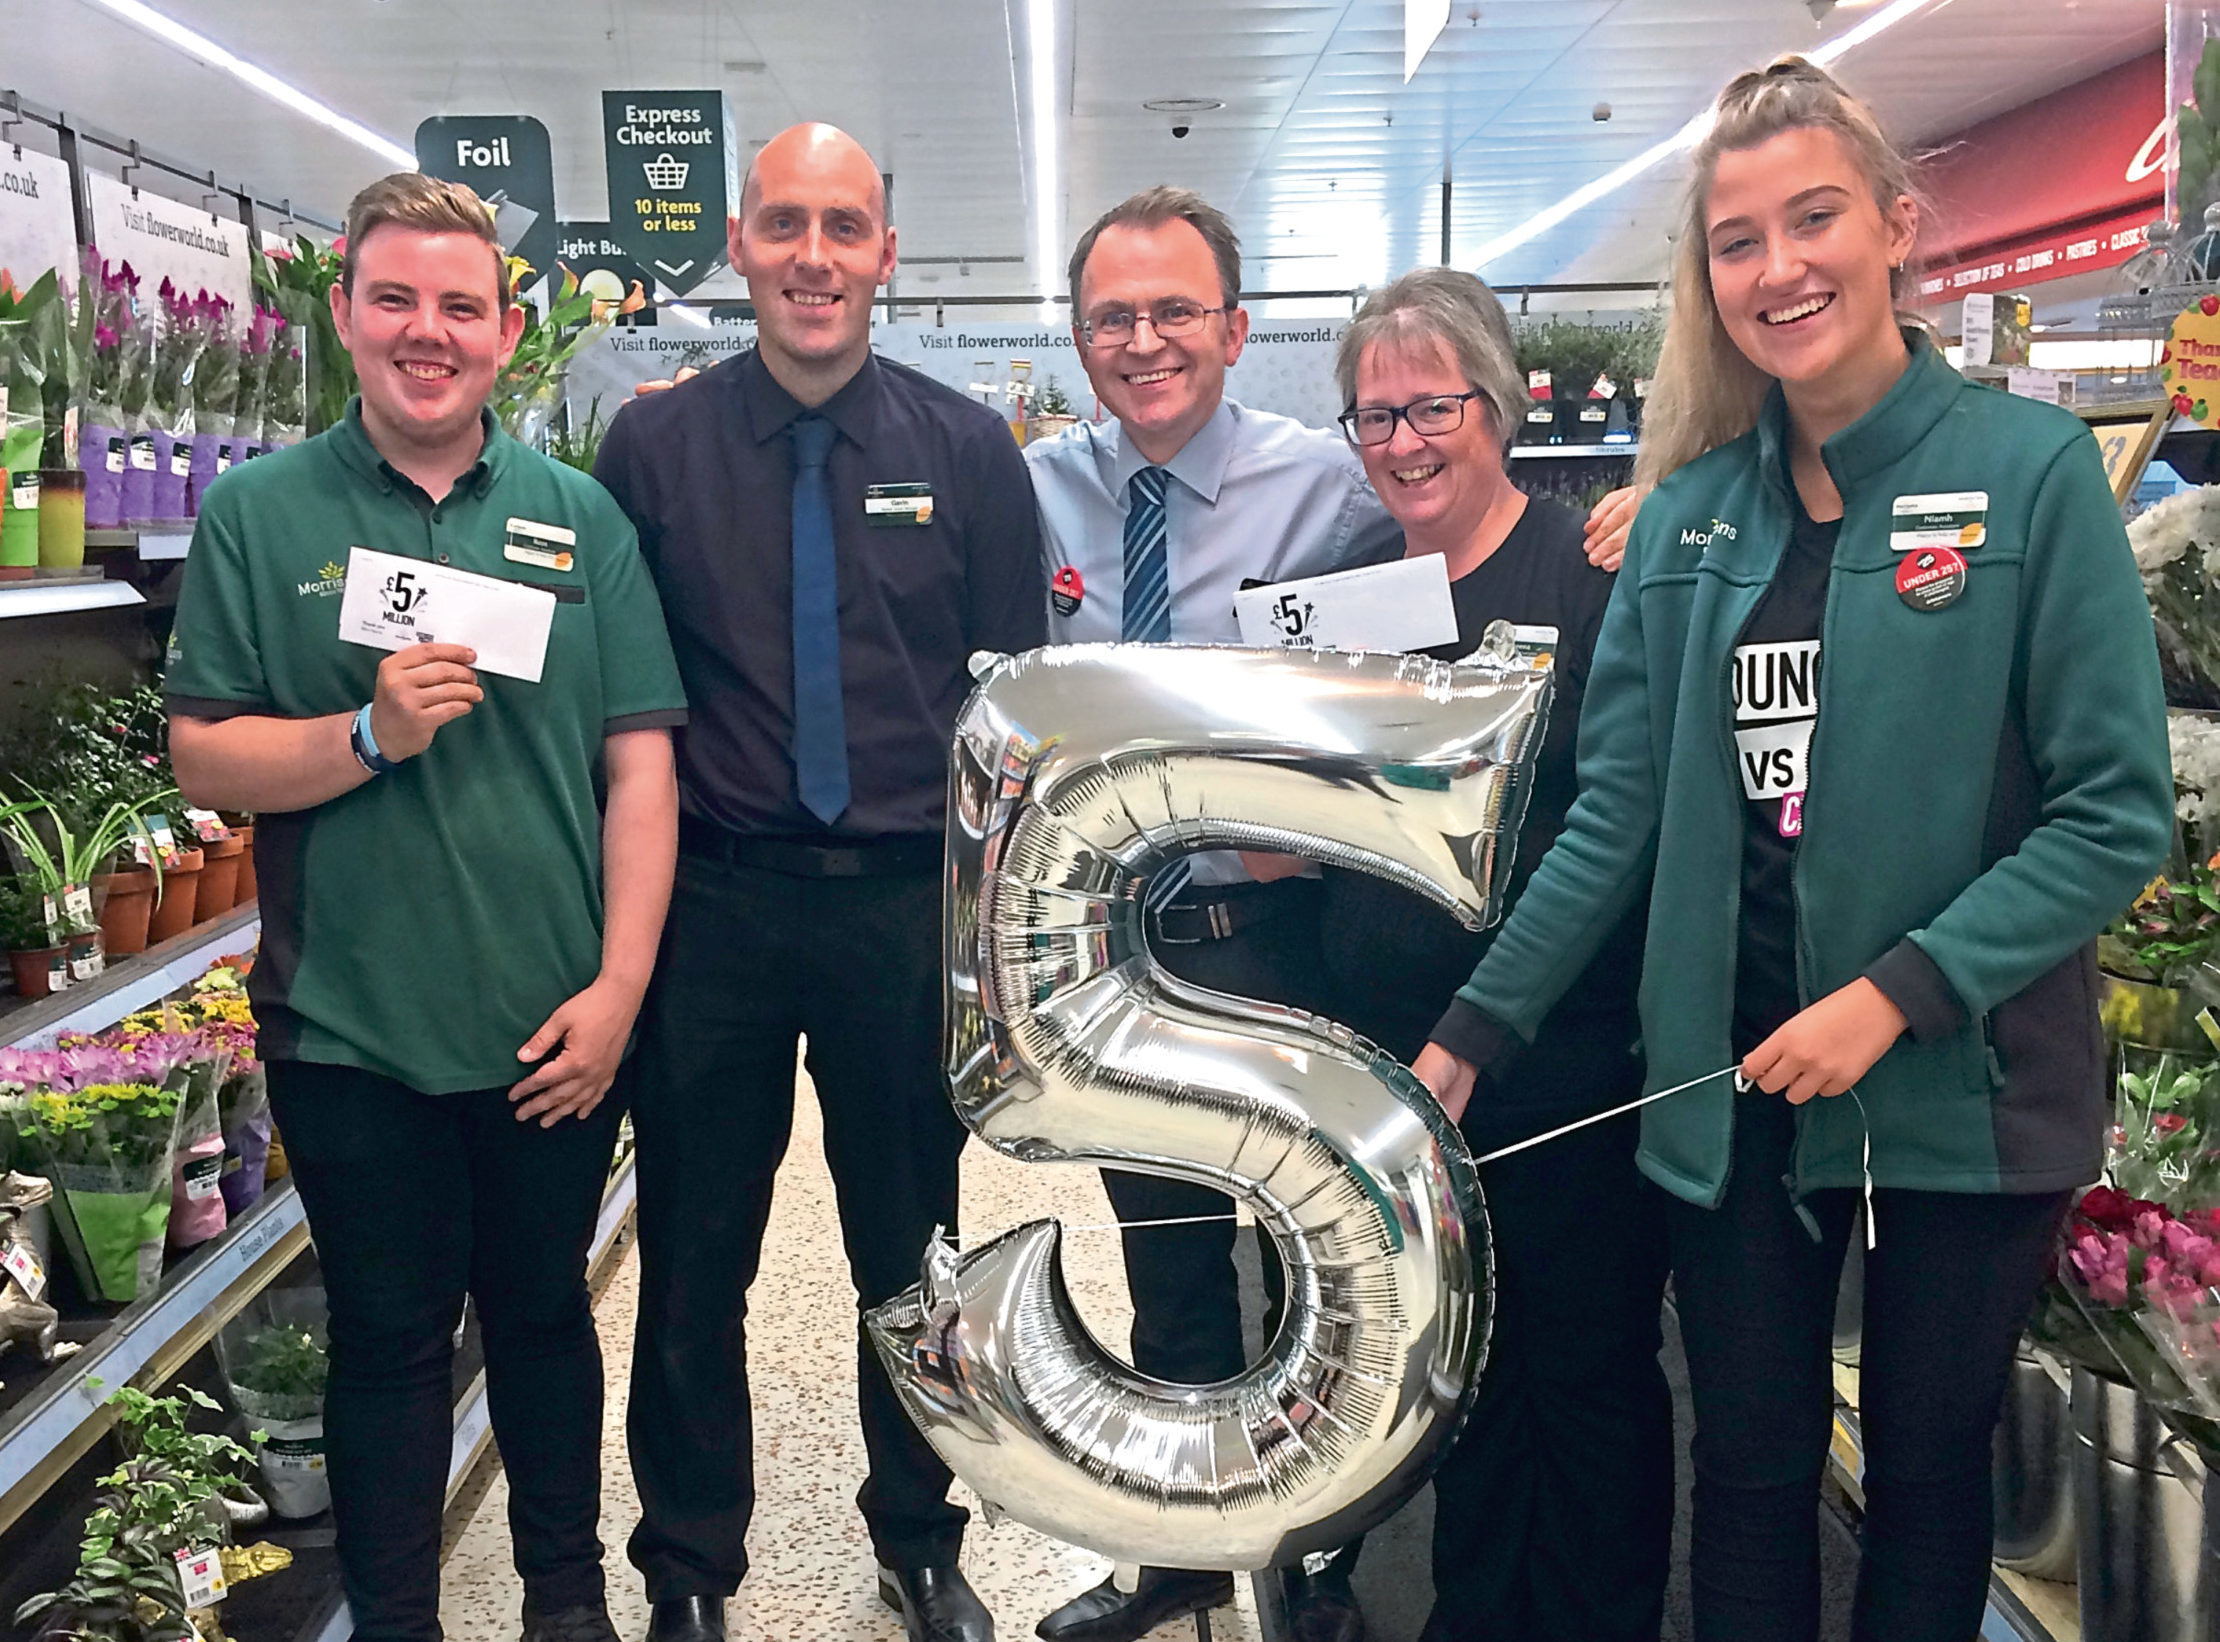 Staff  from Morrisons in Peterhead have helped raise £5 million for CLIC Sargent